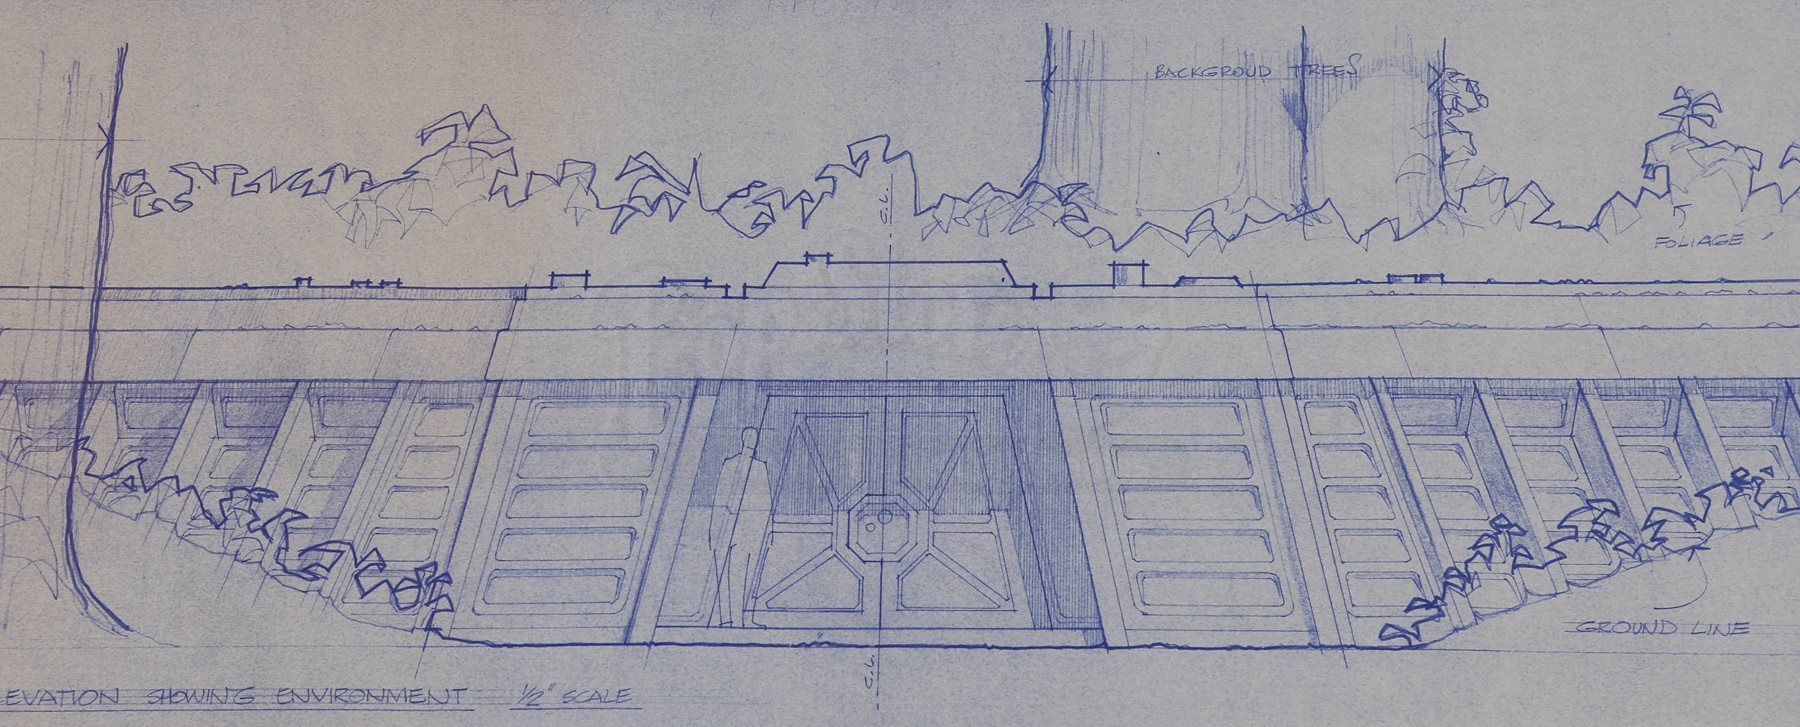 Star wars ep vi return of the jedi bunker site plan section lot 67 malvernweather Images